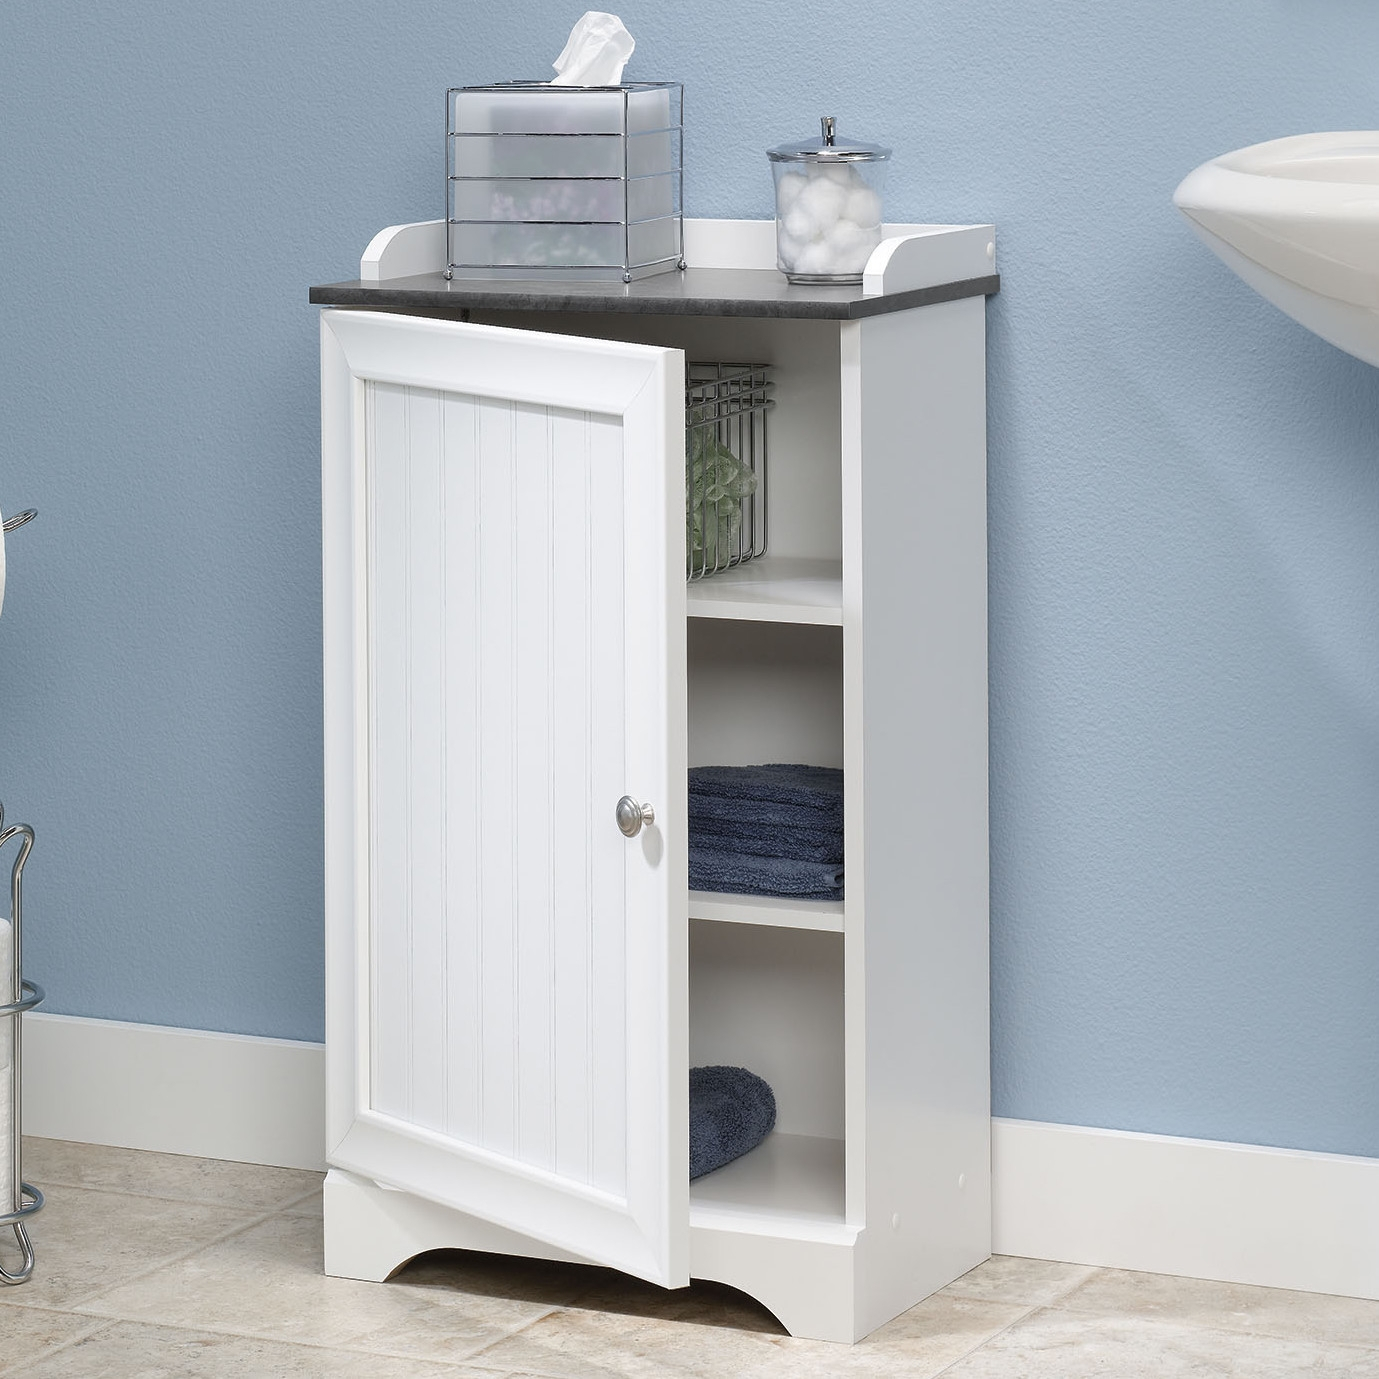 Bathroom Floor Cabinet With Adjustable Shelves In White Finish pertaining to measurements 1379 X 1379